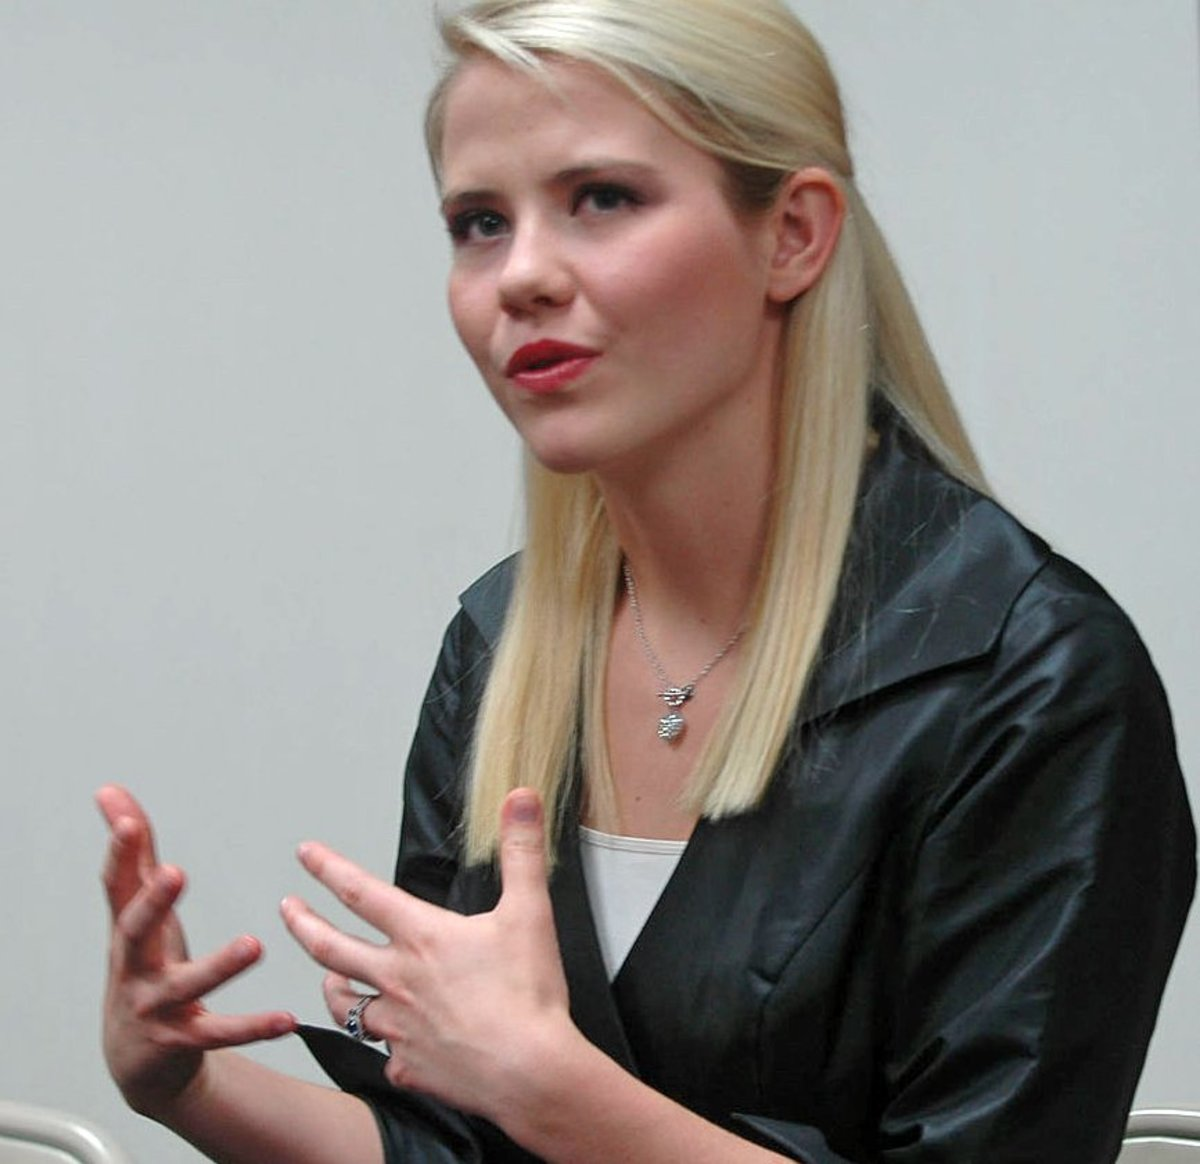 15 Facts You Probably Didn't Know About the Elizabeth Smart Case